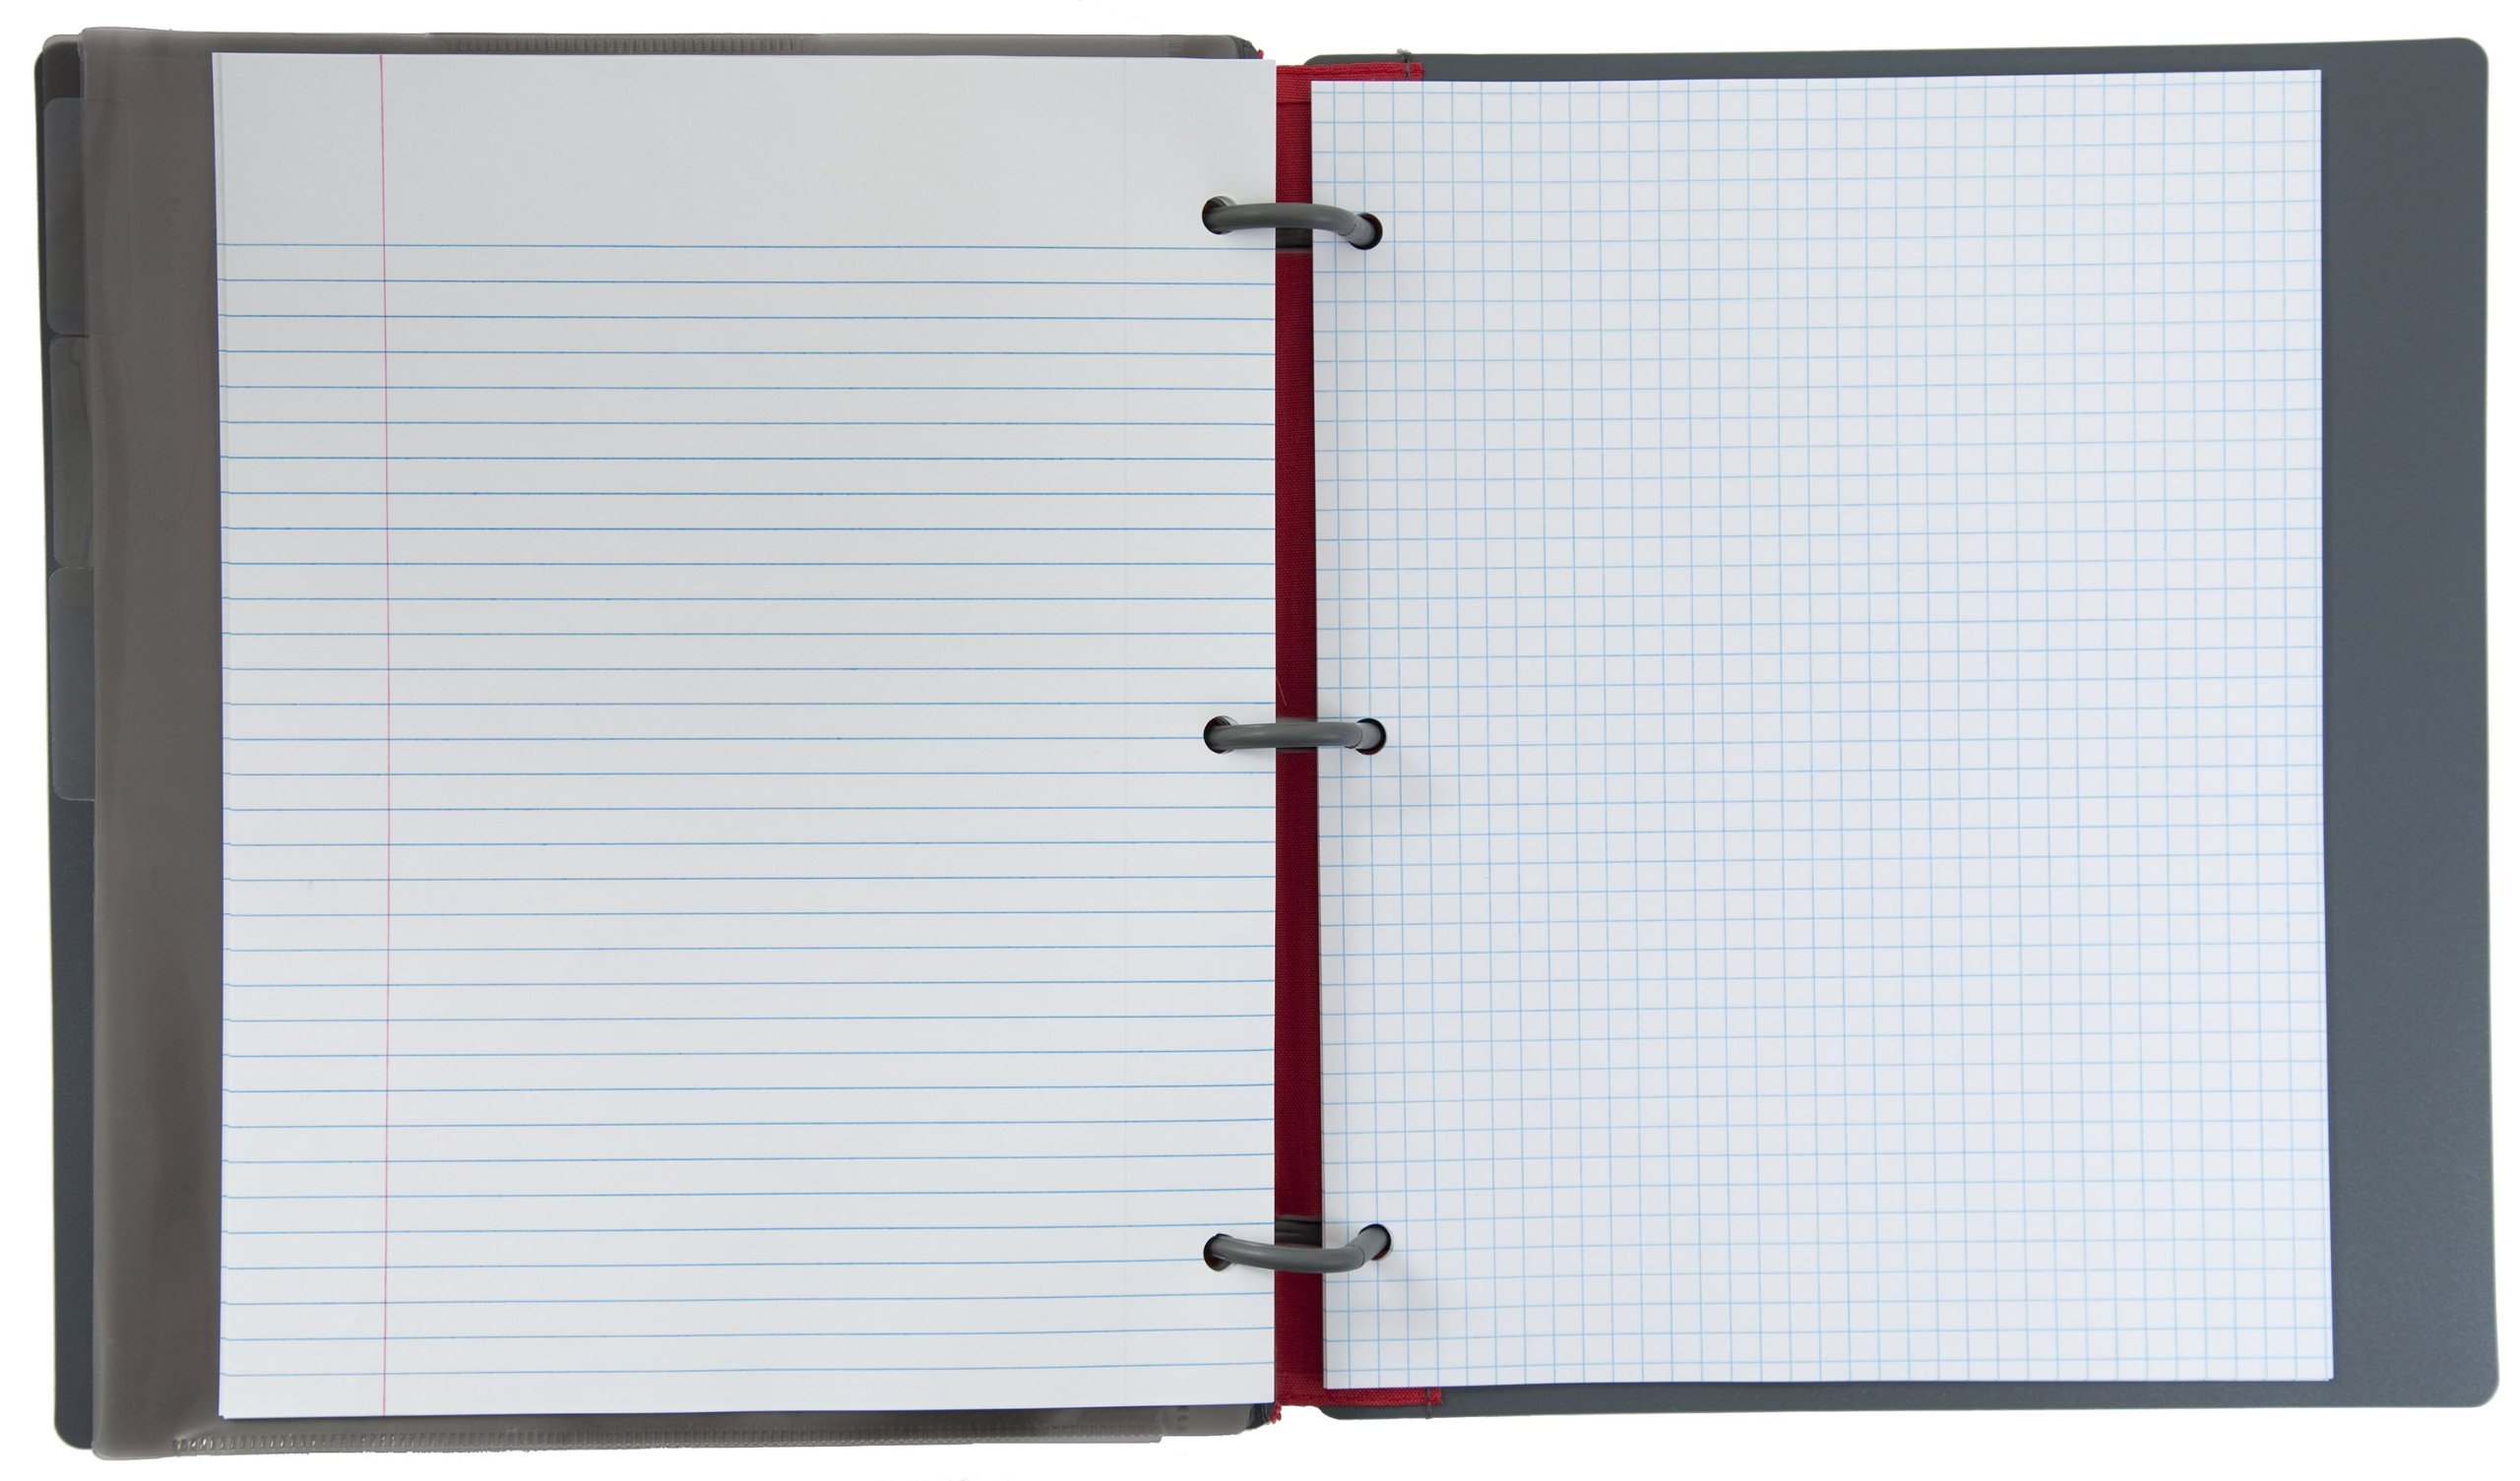 Five Star Flex Hybrid NoteBinder, 1 Inch Binder, Notebook and Binder All-in-One, Blue (72011) by Mead (Image #1)